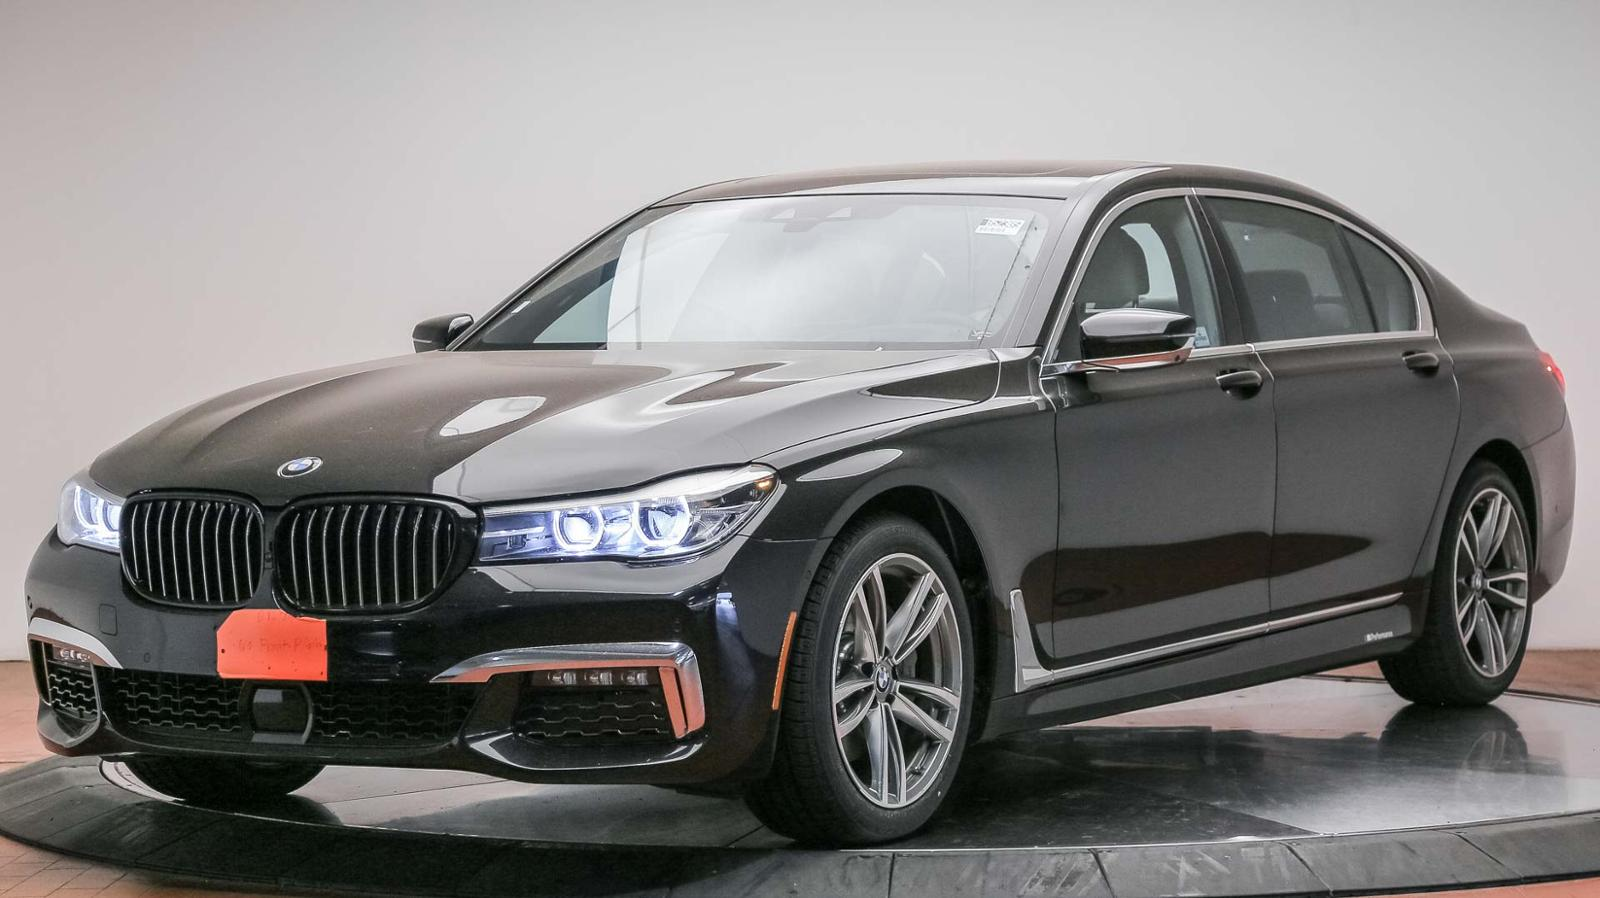 New 2018 Bmw 7 Series 740i Xdrive Sedan 4dr Car In Norwalk